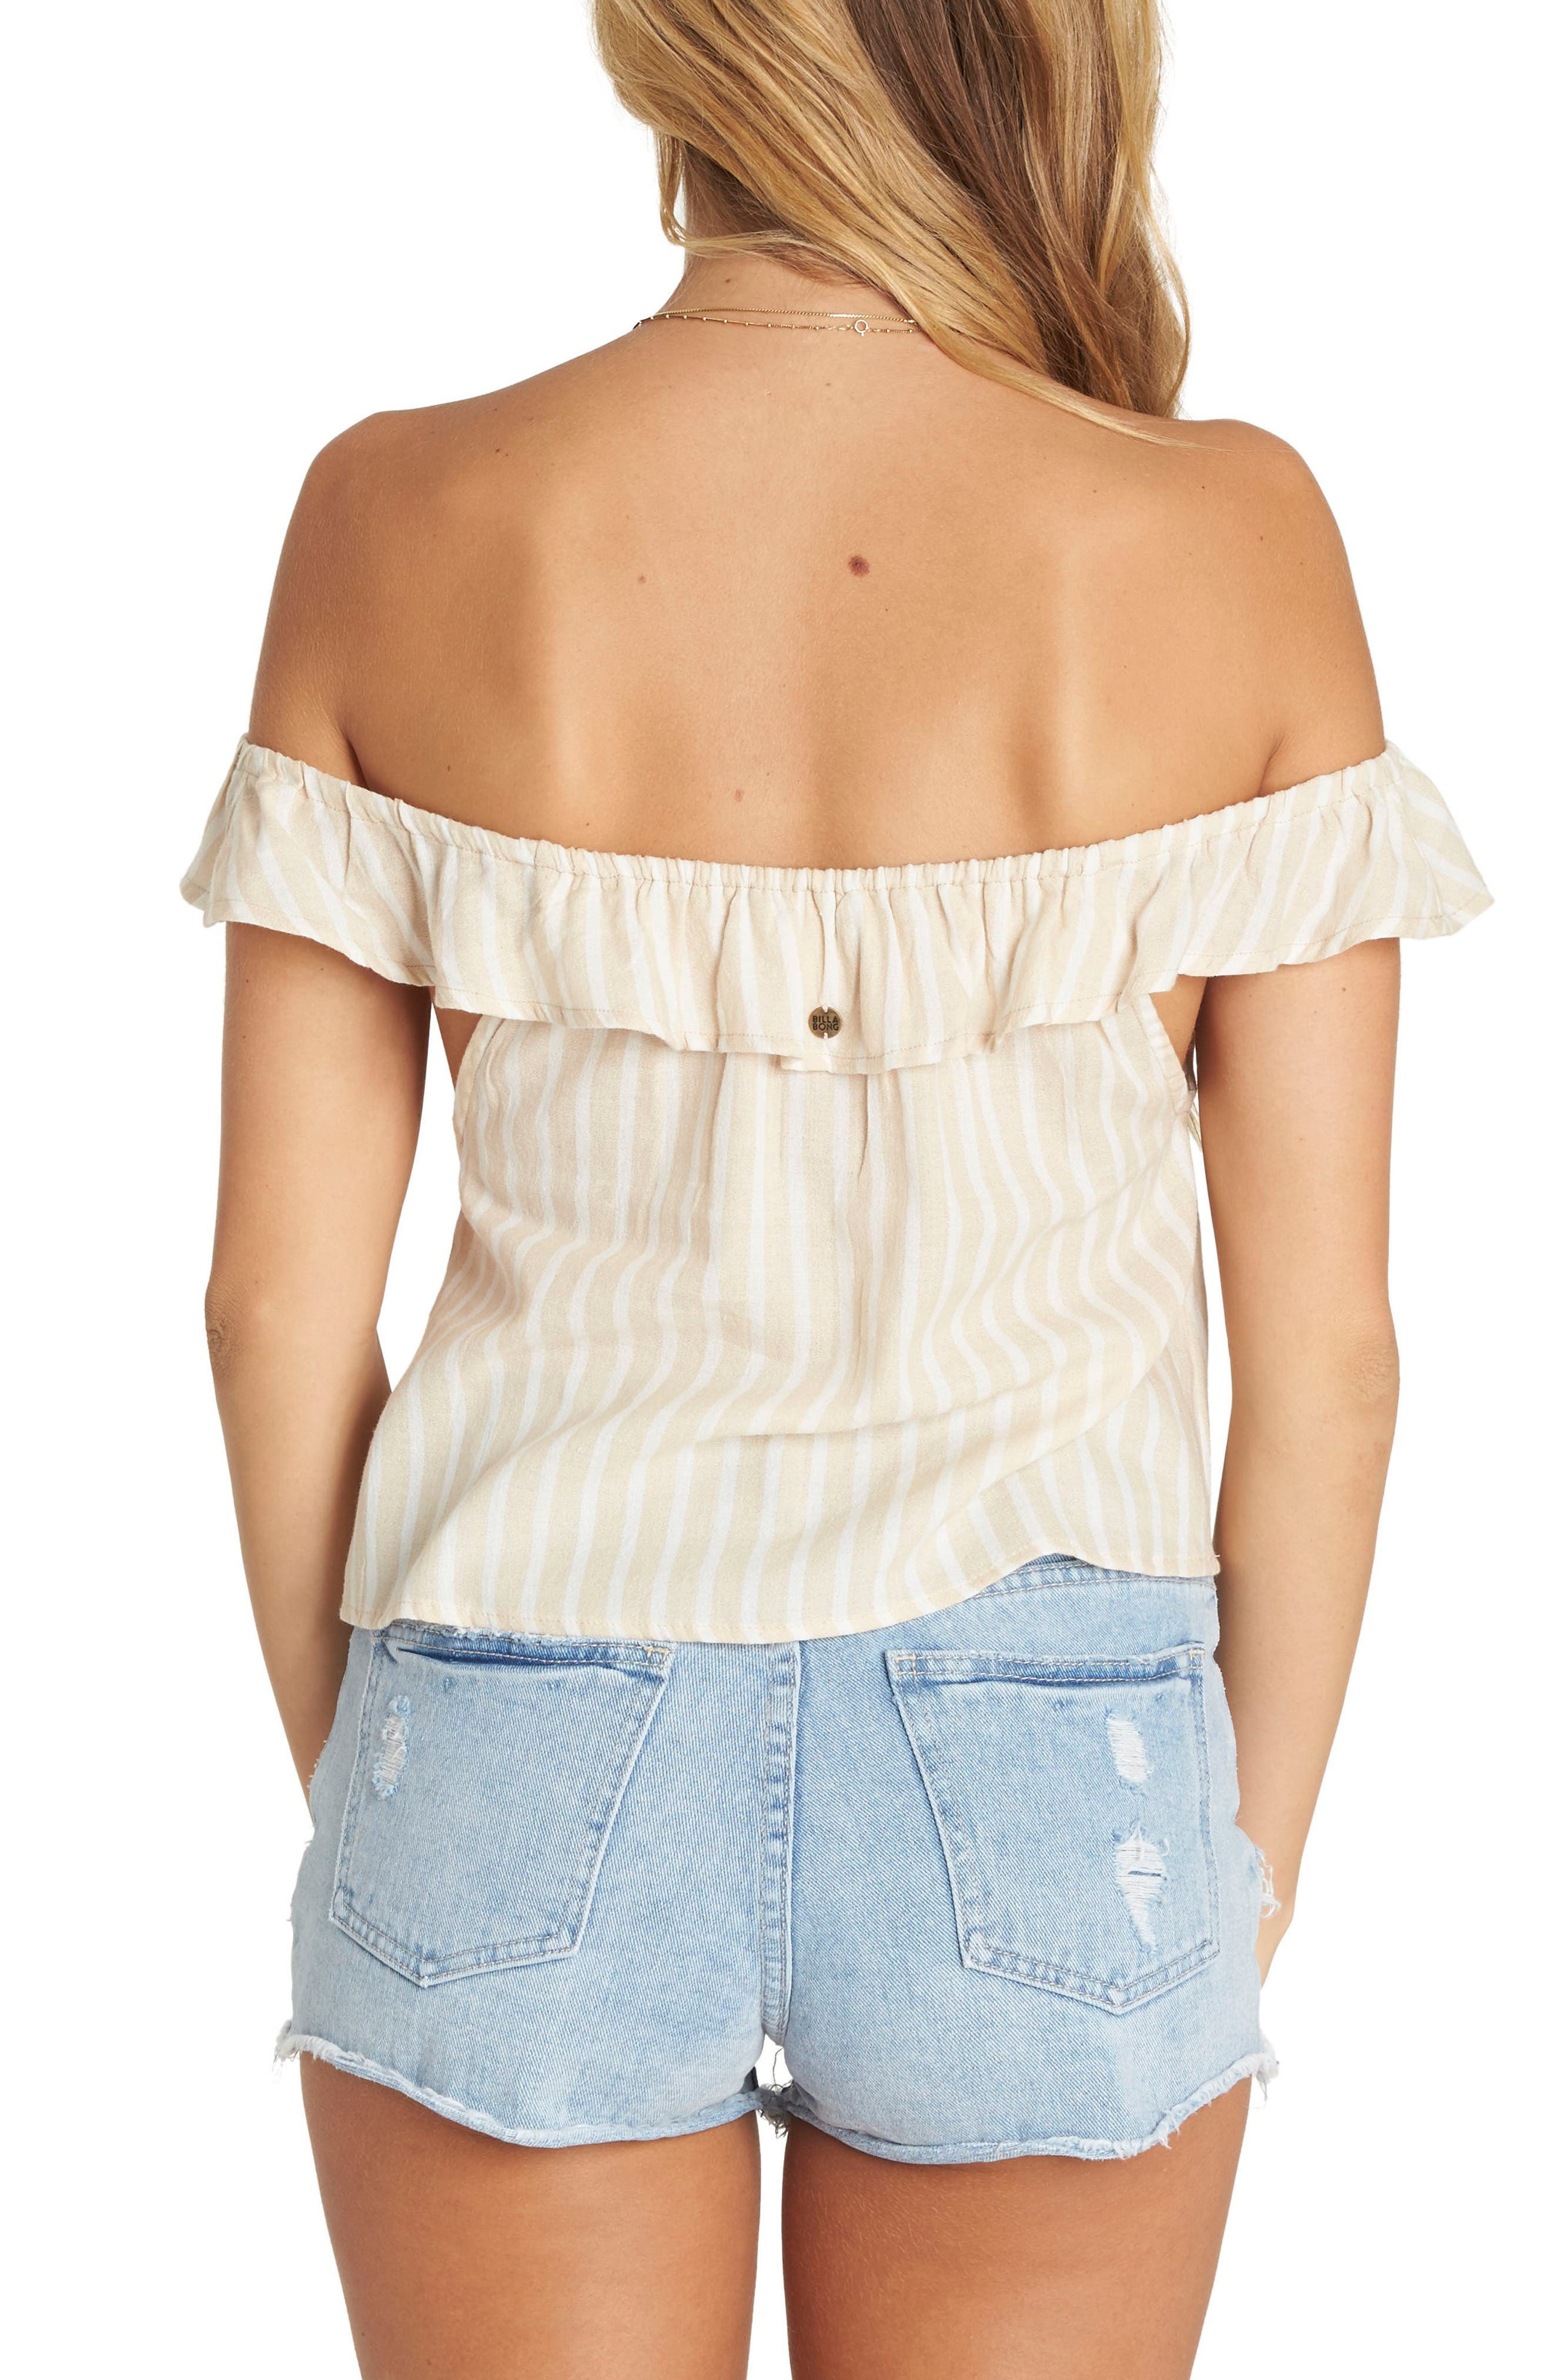 Peach Kisses Off the Shoulder Top,                             Alternate thumbnail 2, color,                             250